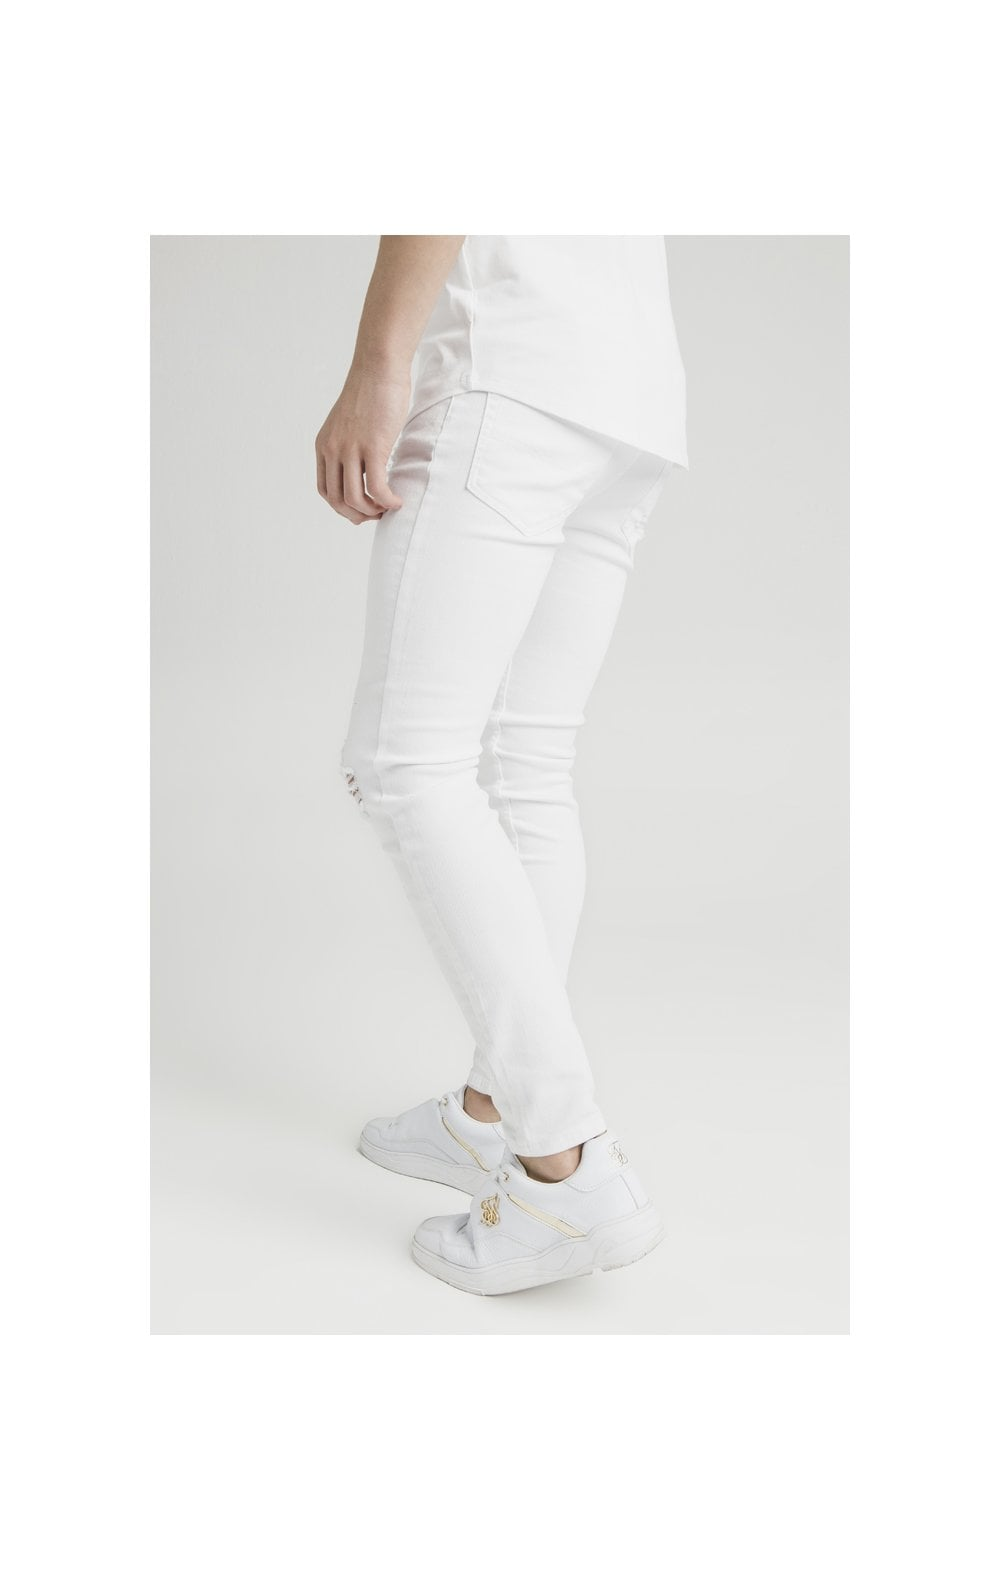 Illusive London Distressed Skinny Denims - White (3)